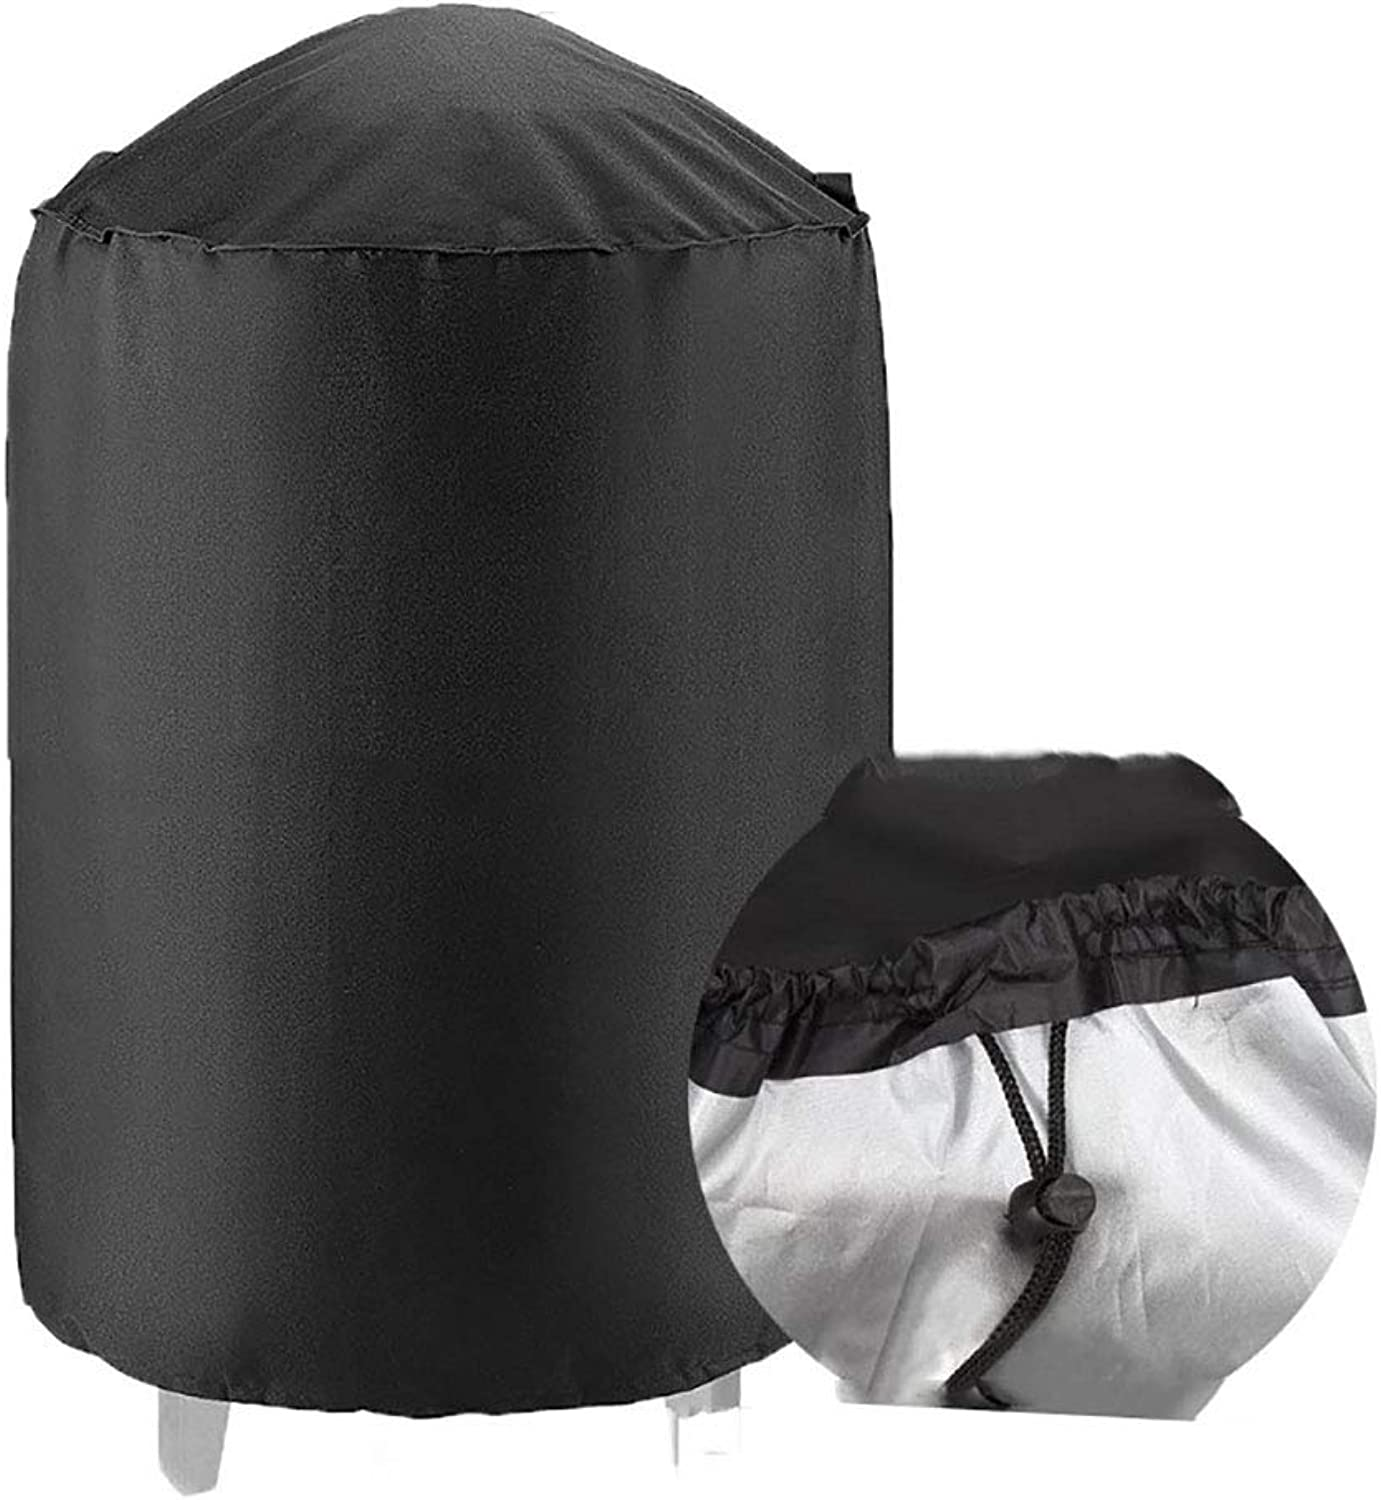 AY-cover Dust Guard Outdoor Furniture Round Dust Cover, Polyester, Garden Table and Chairs Barbecue Cover, Waterproof UV (color   Black, Size   24  28.5inch)